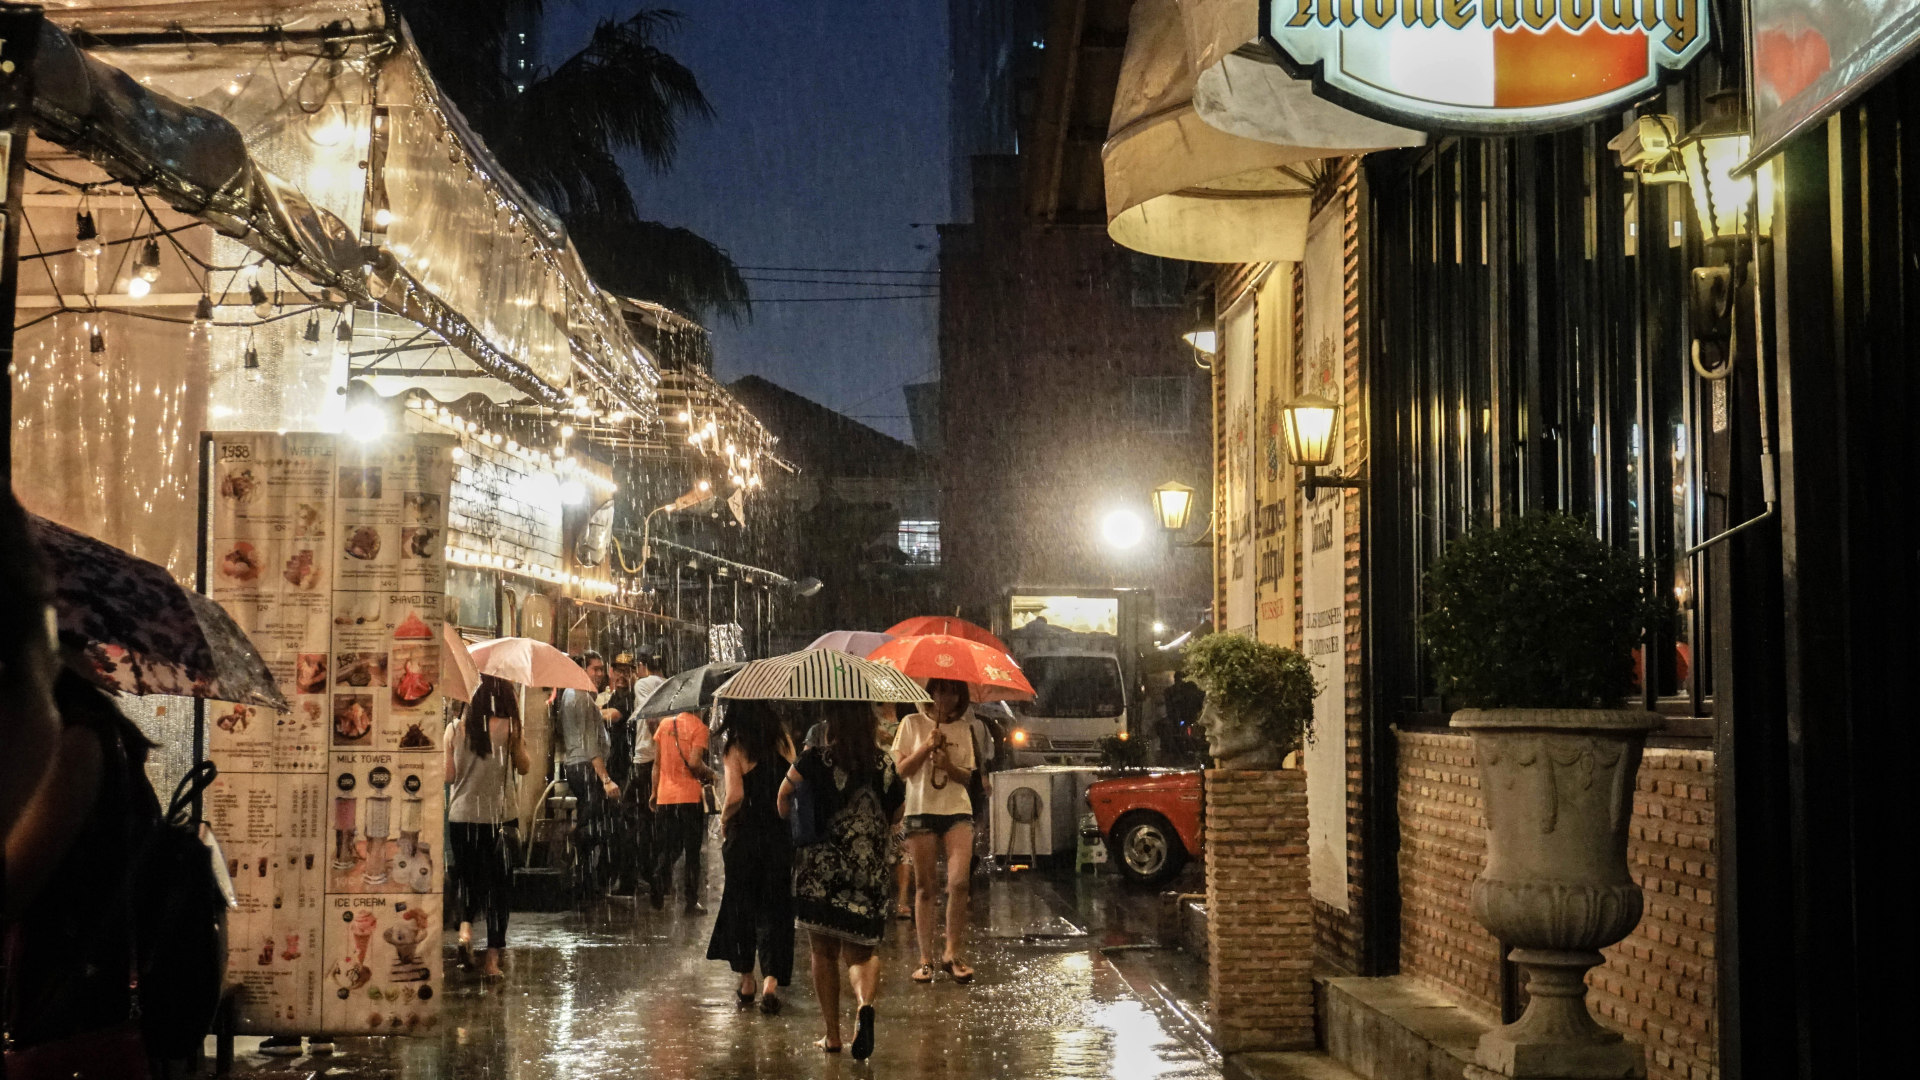 rain at the night market in Bangkok